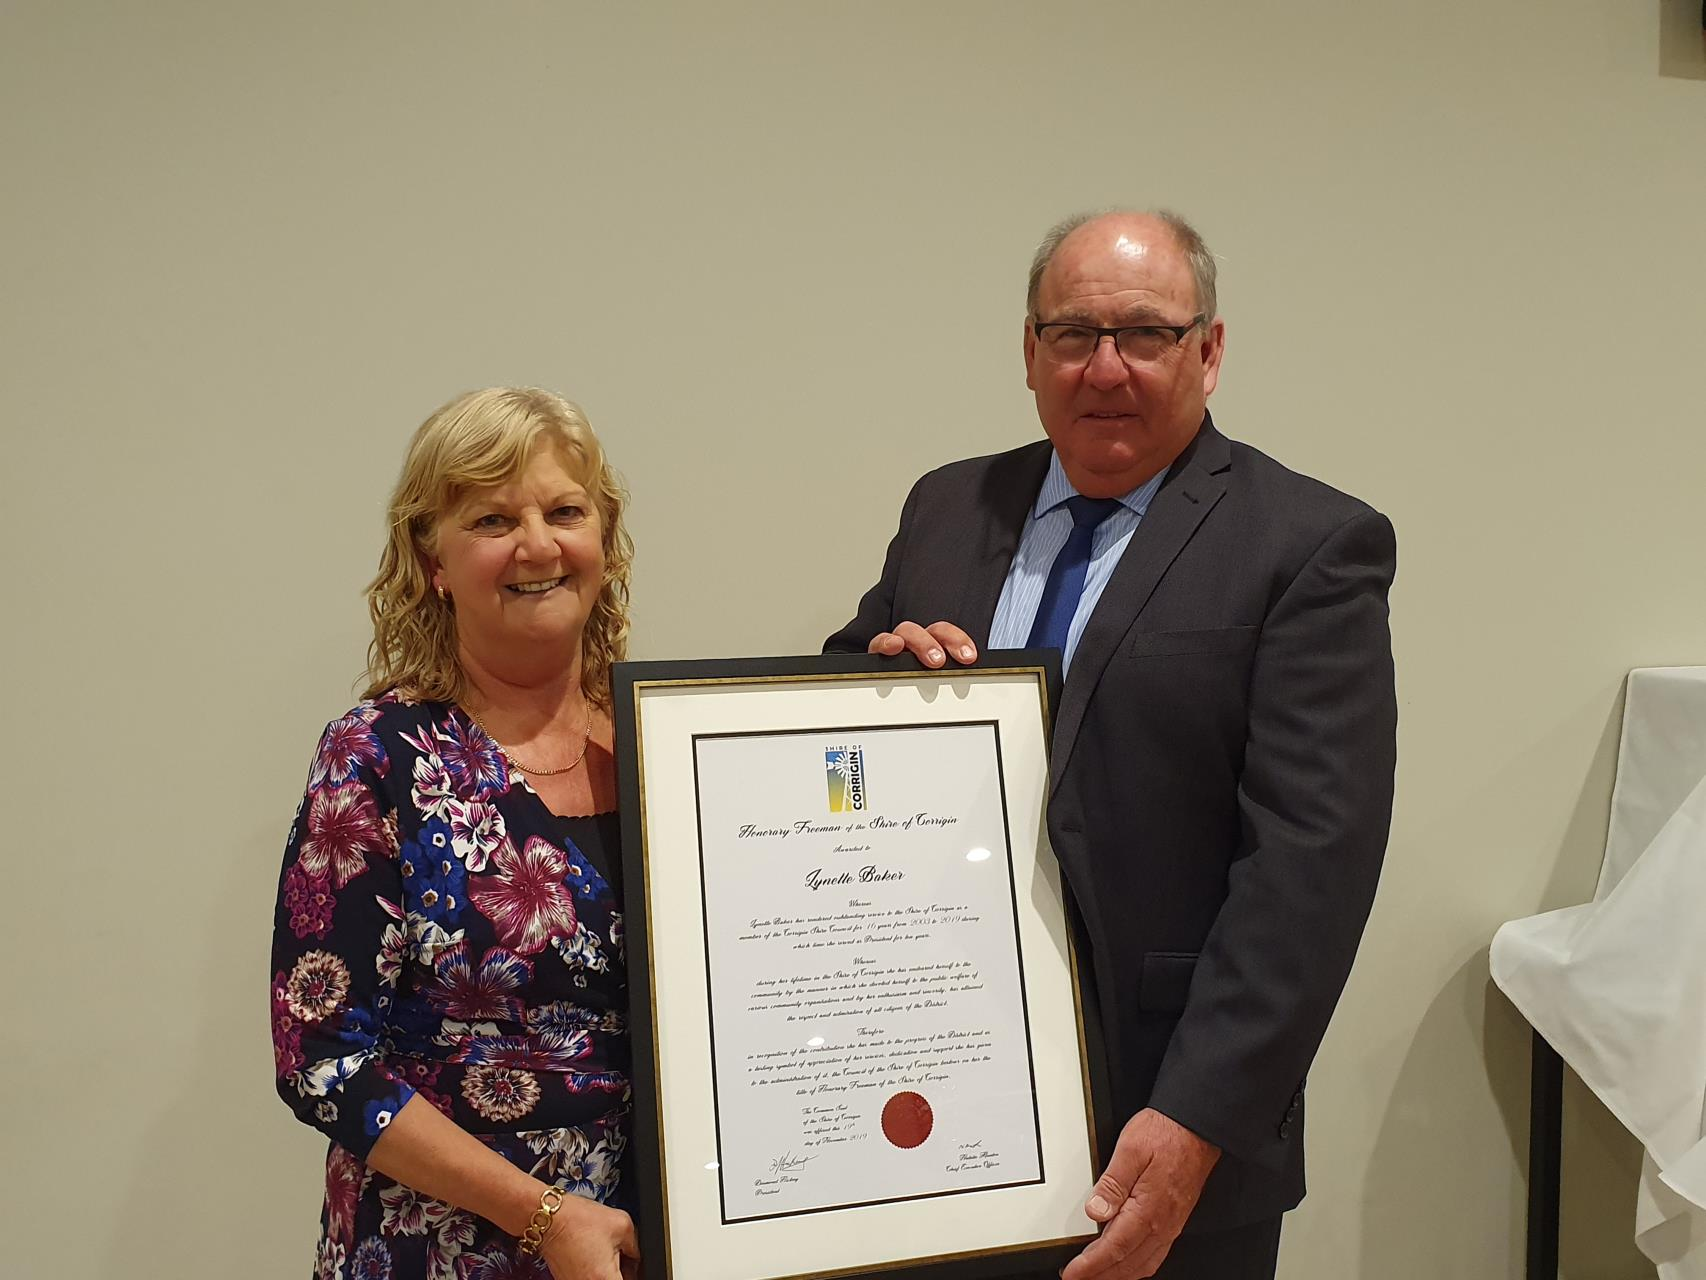 HONORARY FREEMAN OF THE SHIRE AWARDED TO LYNETTE BAKER